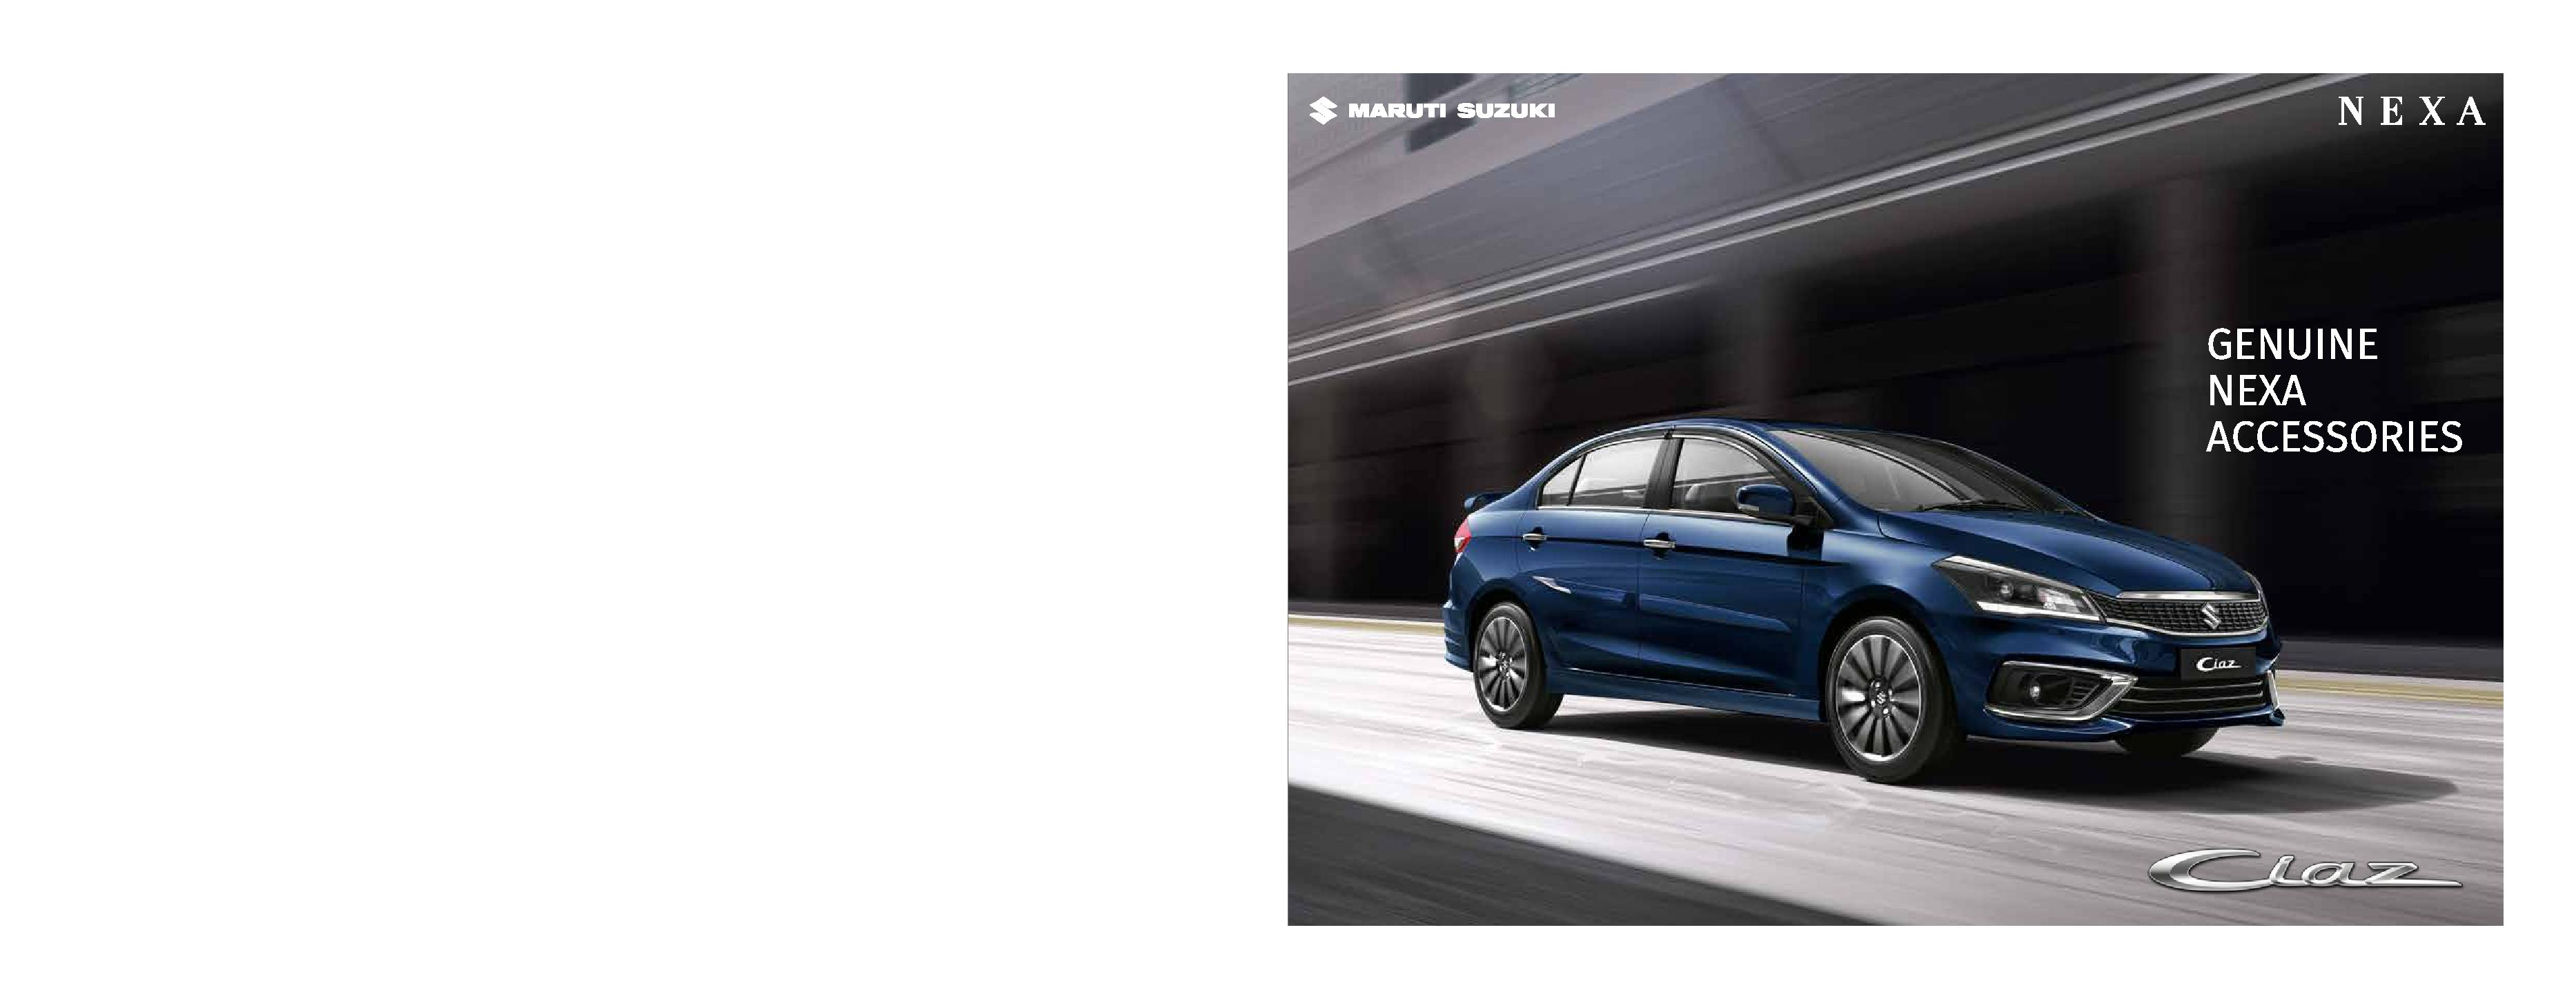 2018 maruti ciaz facelift accessories brochure page 1